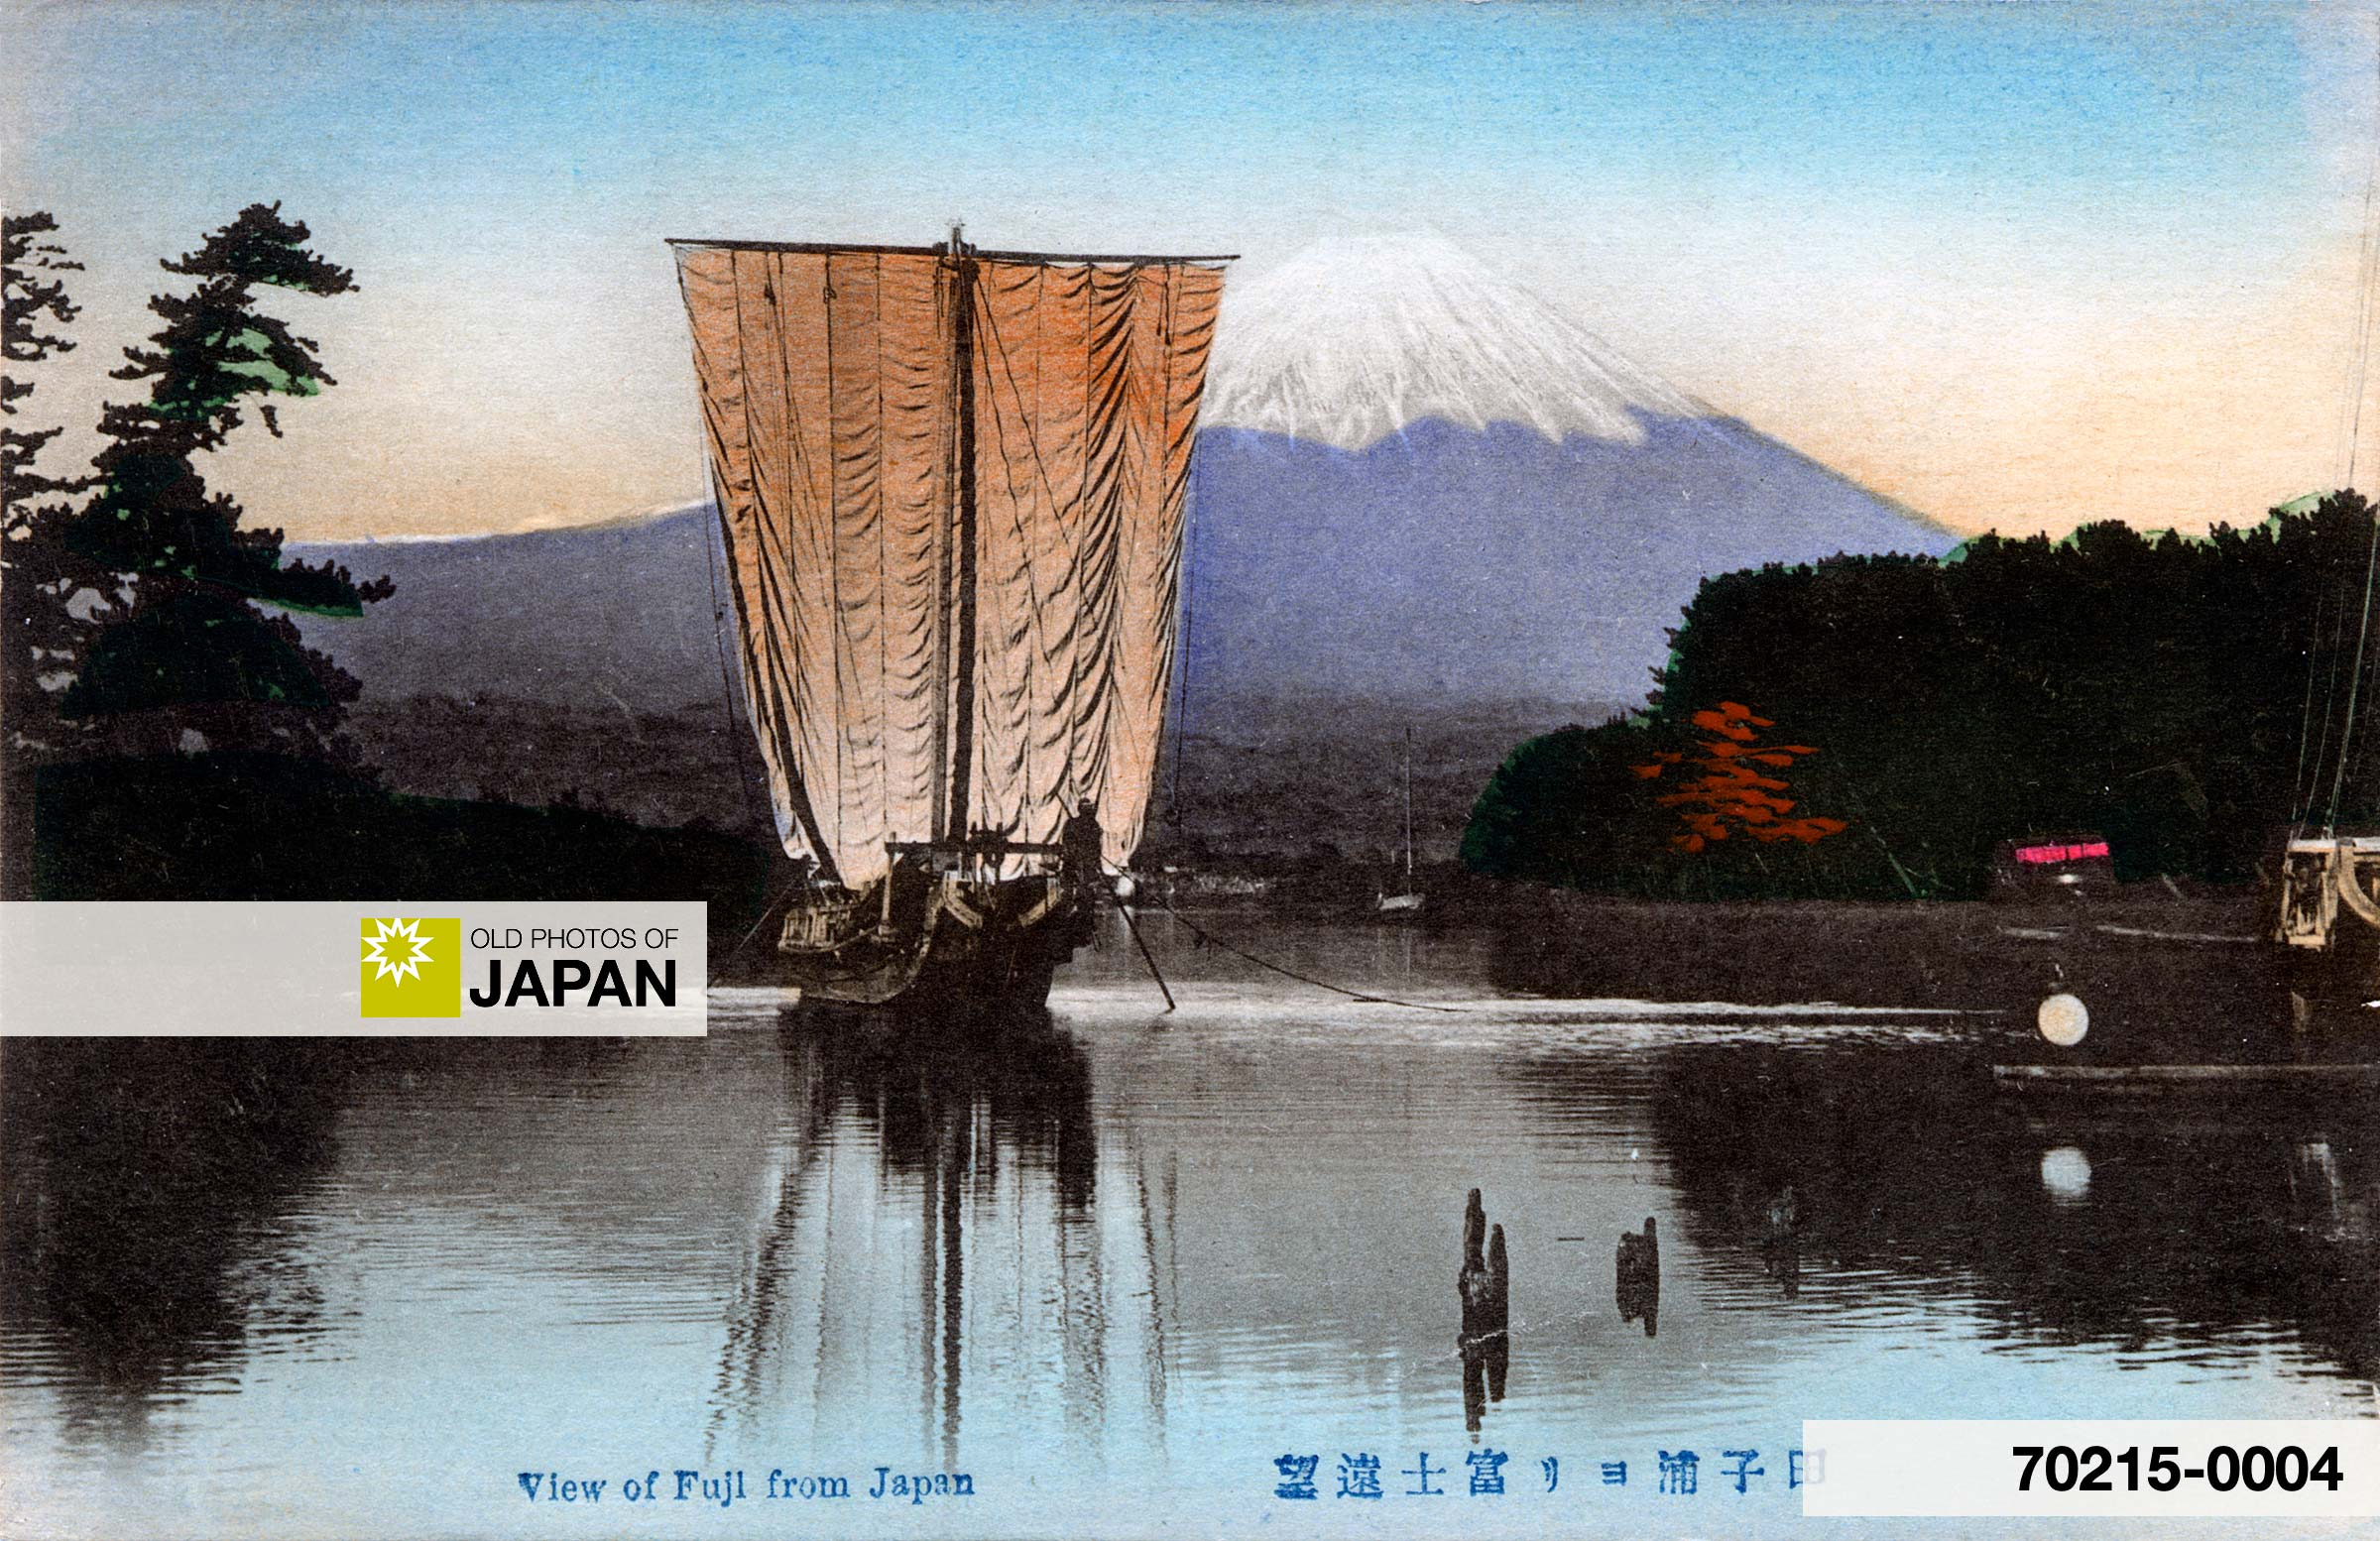 Sailing Vessel and View of Fuji from Tagonoura